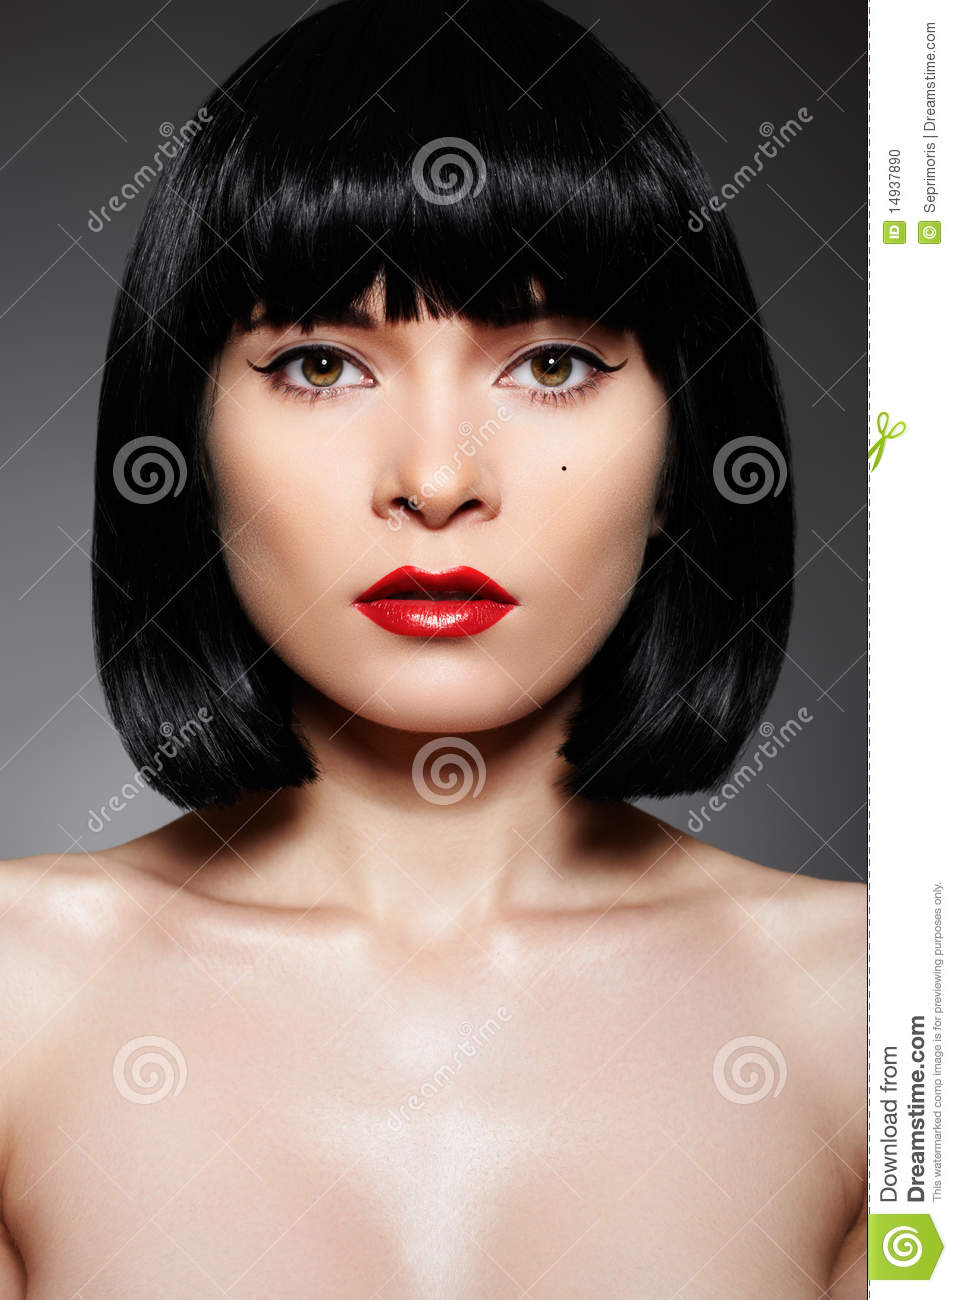 Luxury Woman With Fashion Make Up Bob Hairstyle Stock Photo Image 14937890